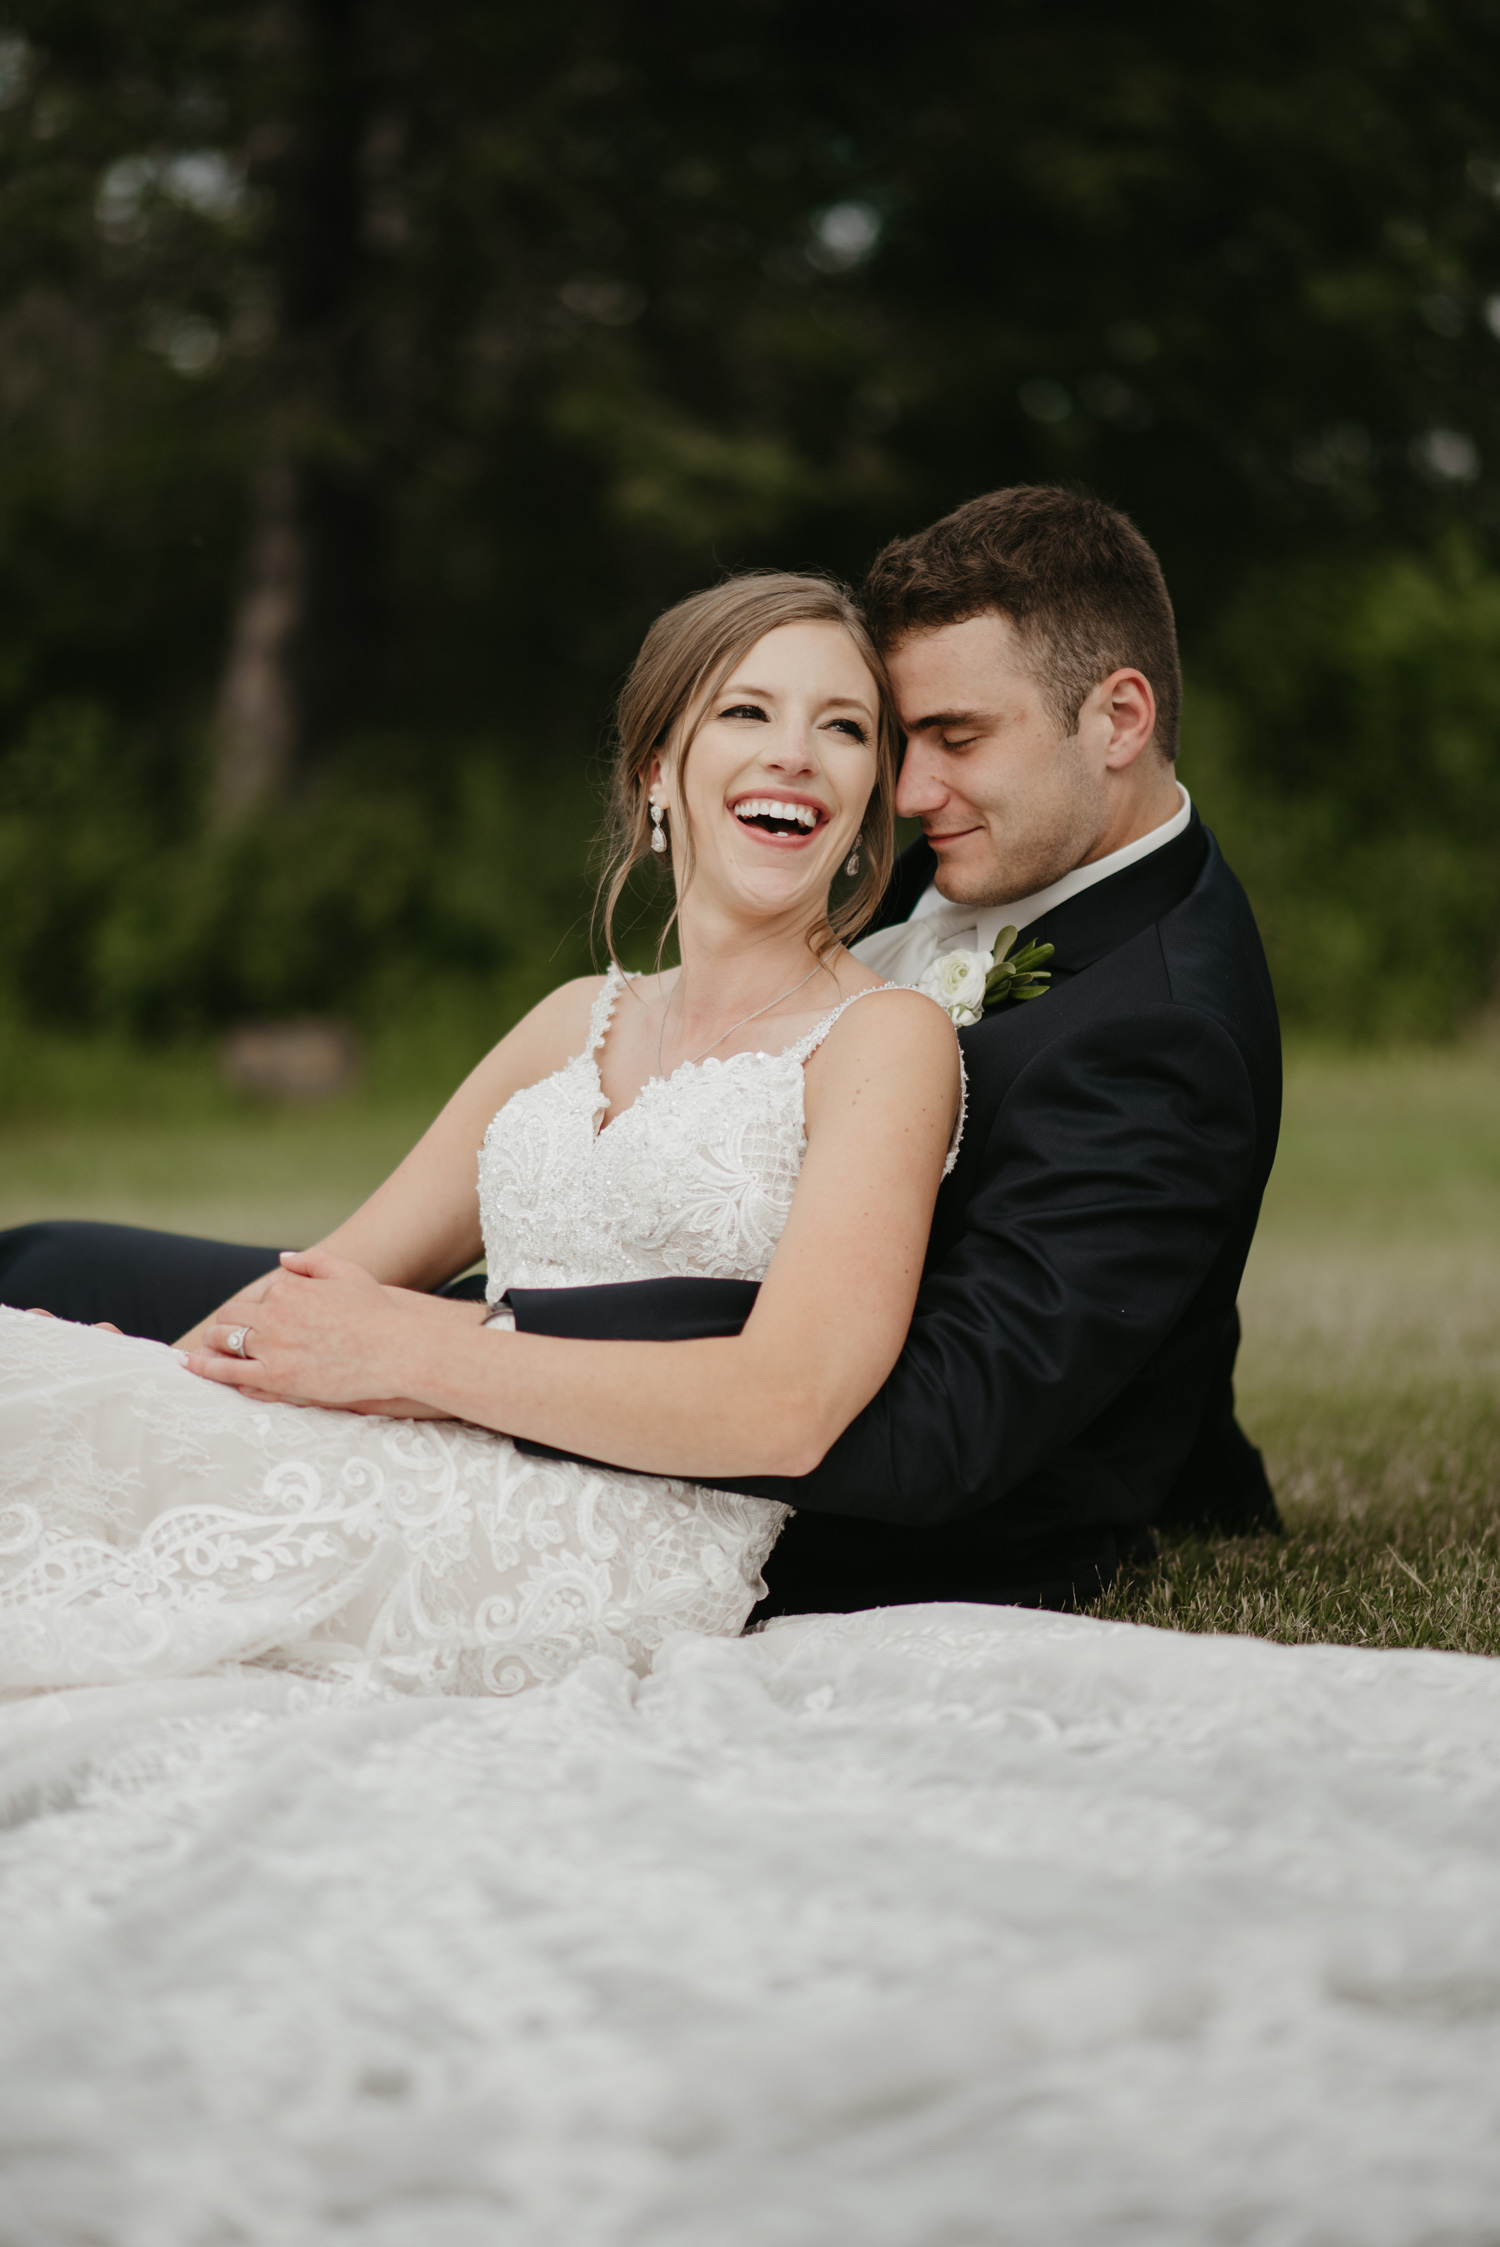 Bride and groom laughing laying down on grass